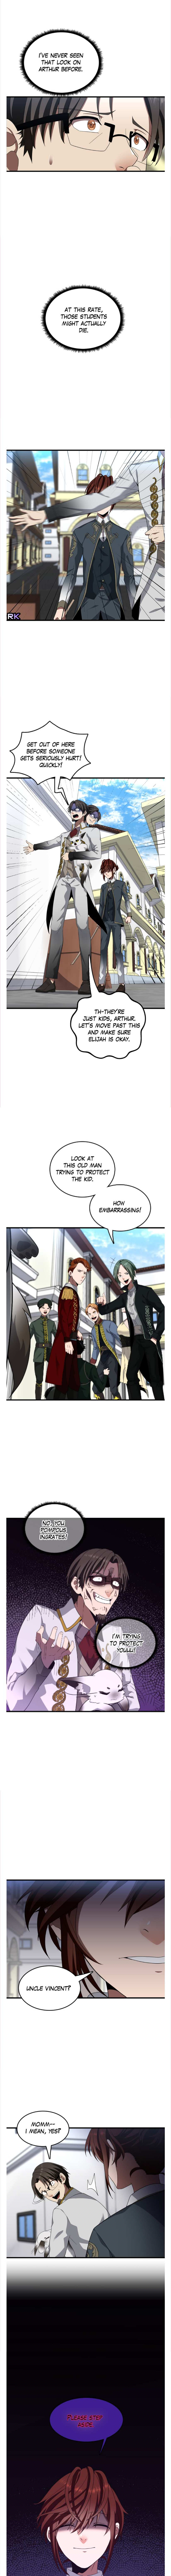 The Beginning After the End - chapter 80-eng-li